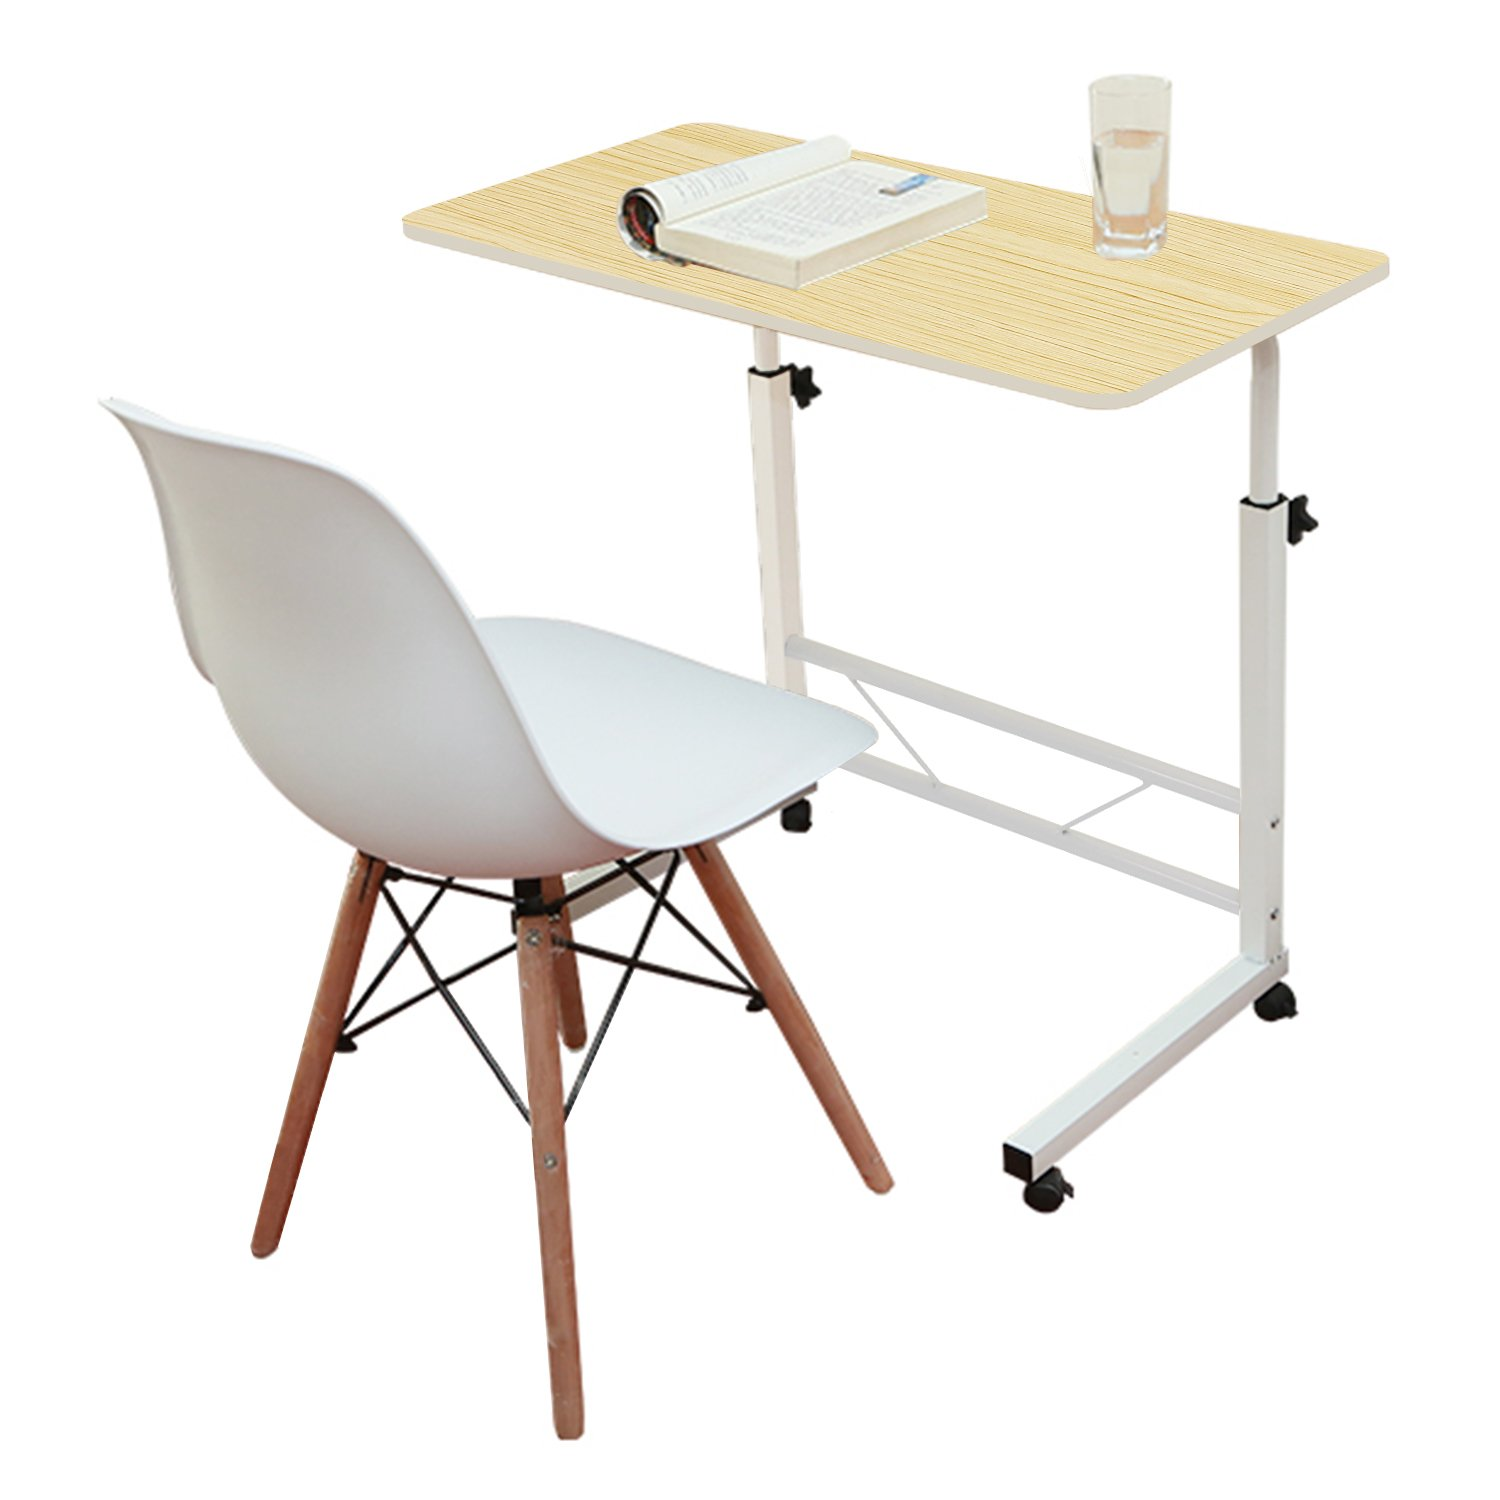 Jerry & Maggie - Adjustable Desk Lap Desk Table Lapdesk With 4 Wheels Flexible Wooden Stand Desk Cart Tray Side Table for Bed - Light Wood Tone